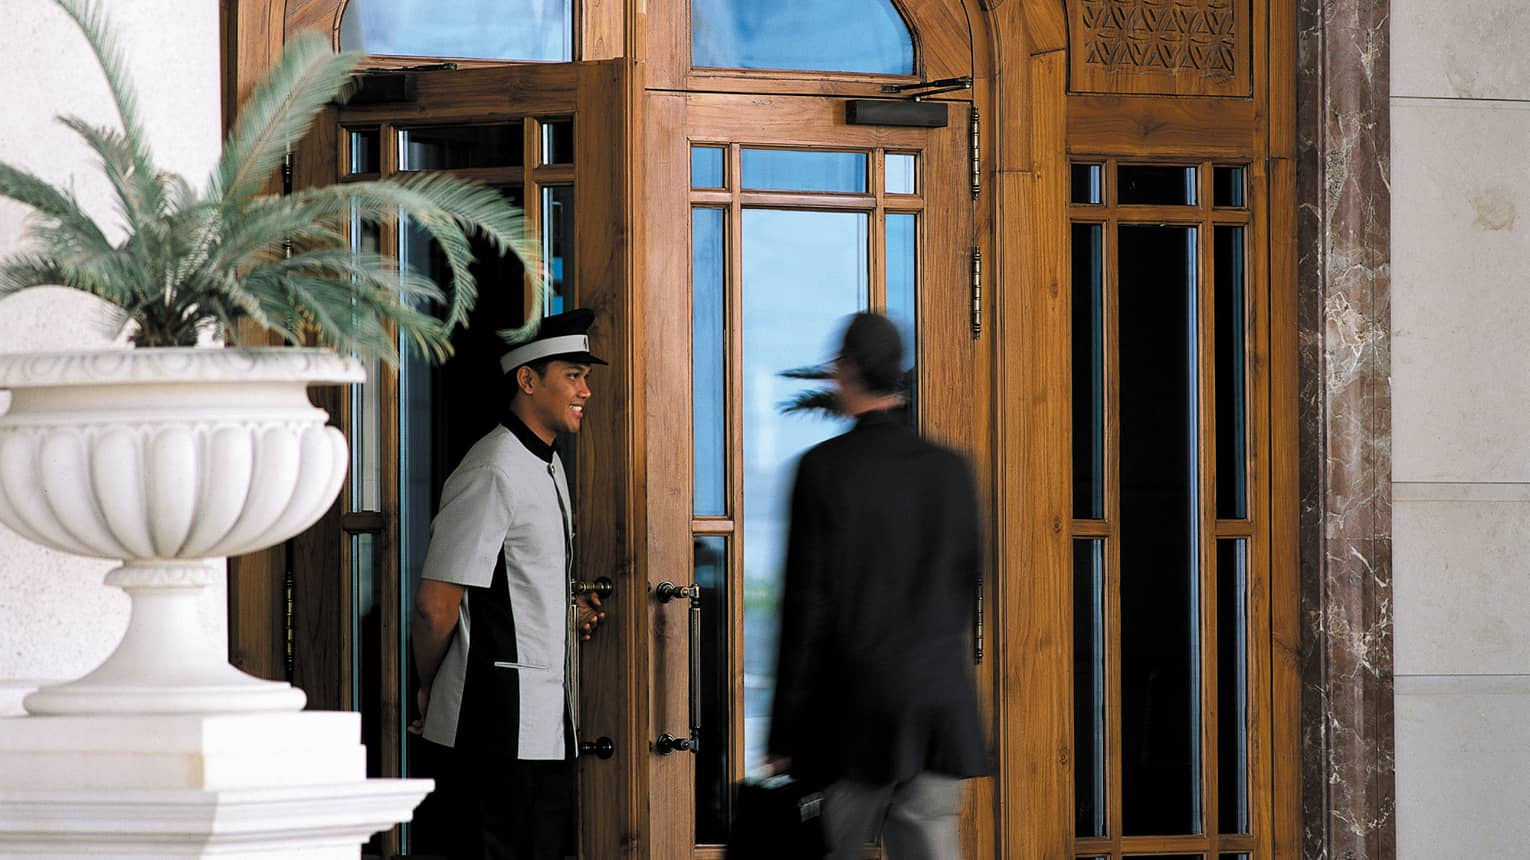 Smiling doorman opens door for guest at Four Seasons Doha hotel